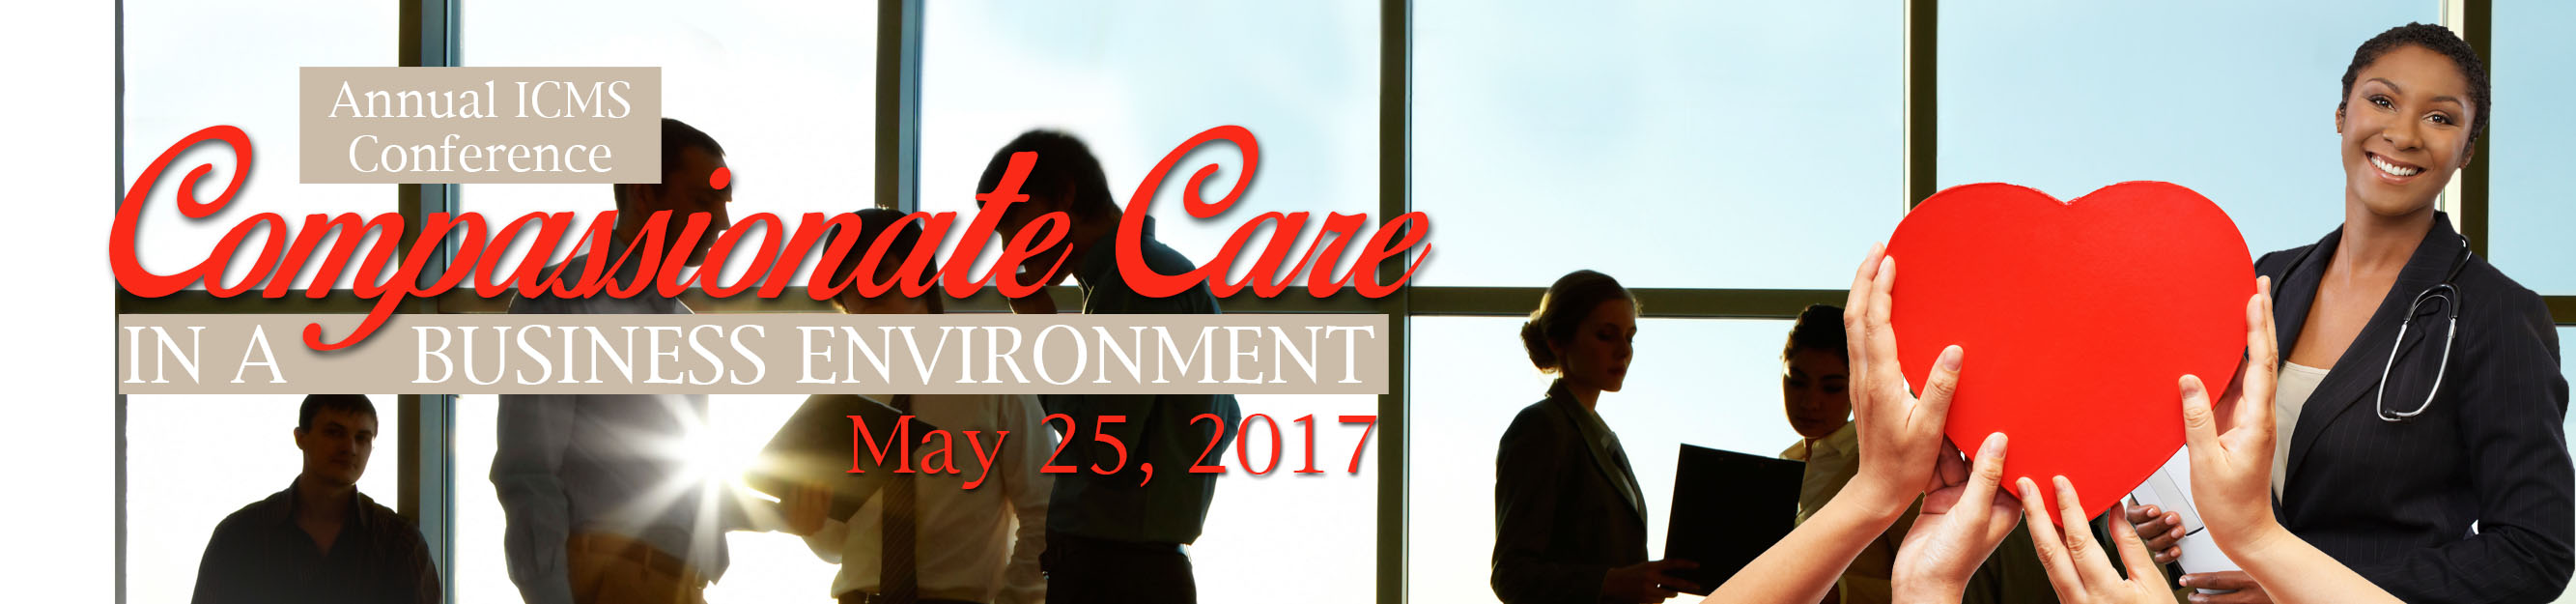 2017 Case Management Annual Conference, Compassionate Care in a Business Environment